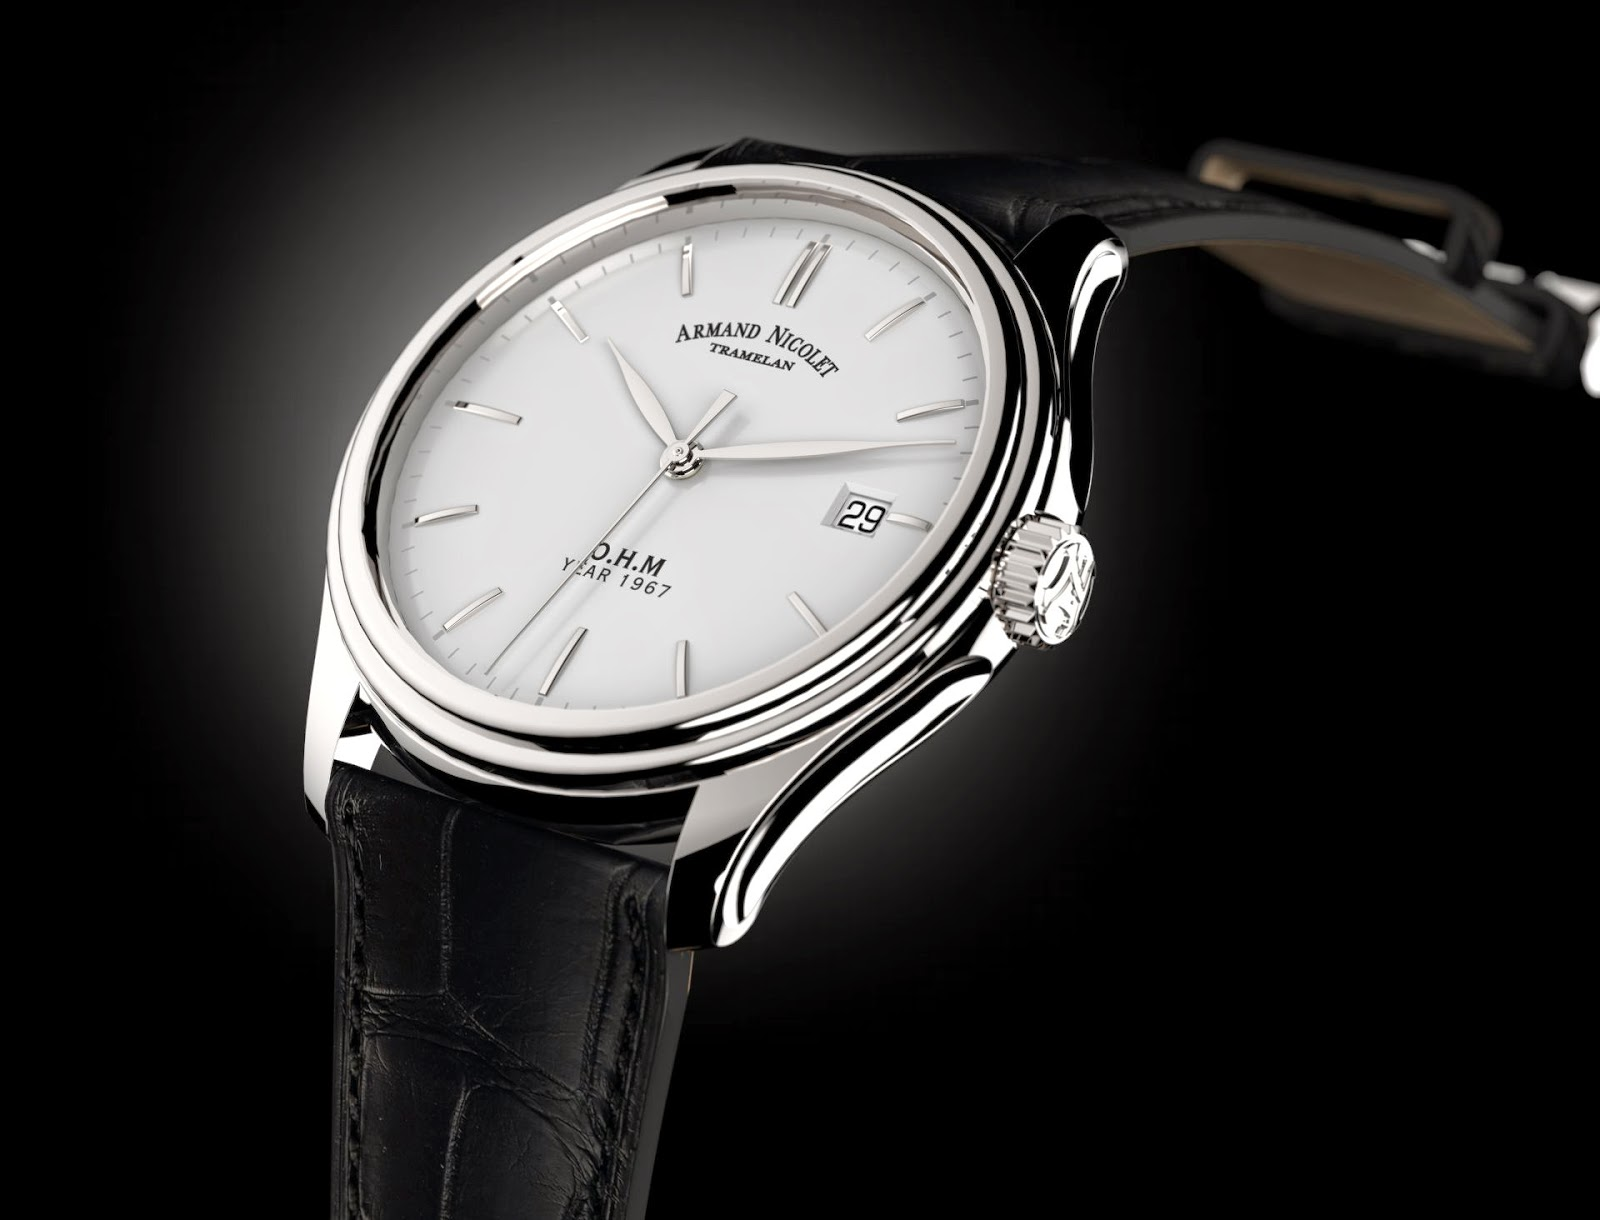 Armand Nicolet O.H.M. L15 Limited Edition